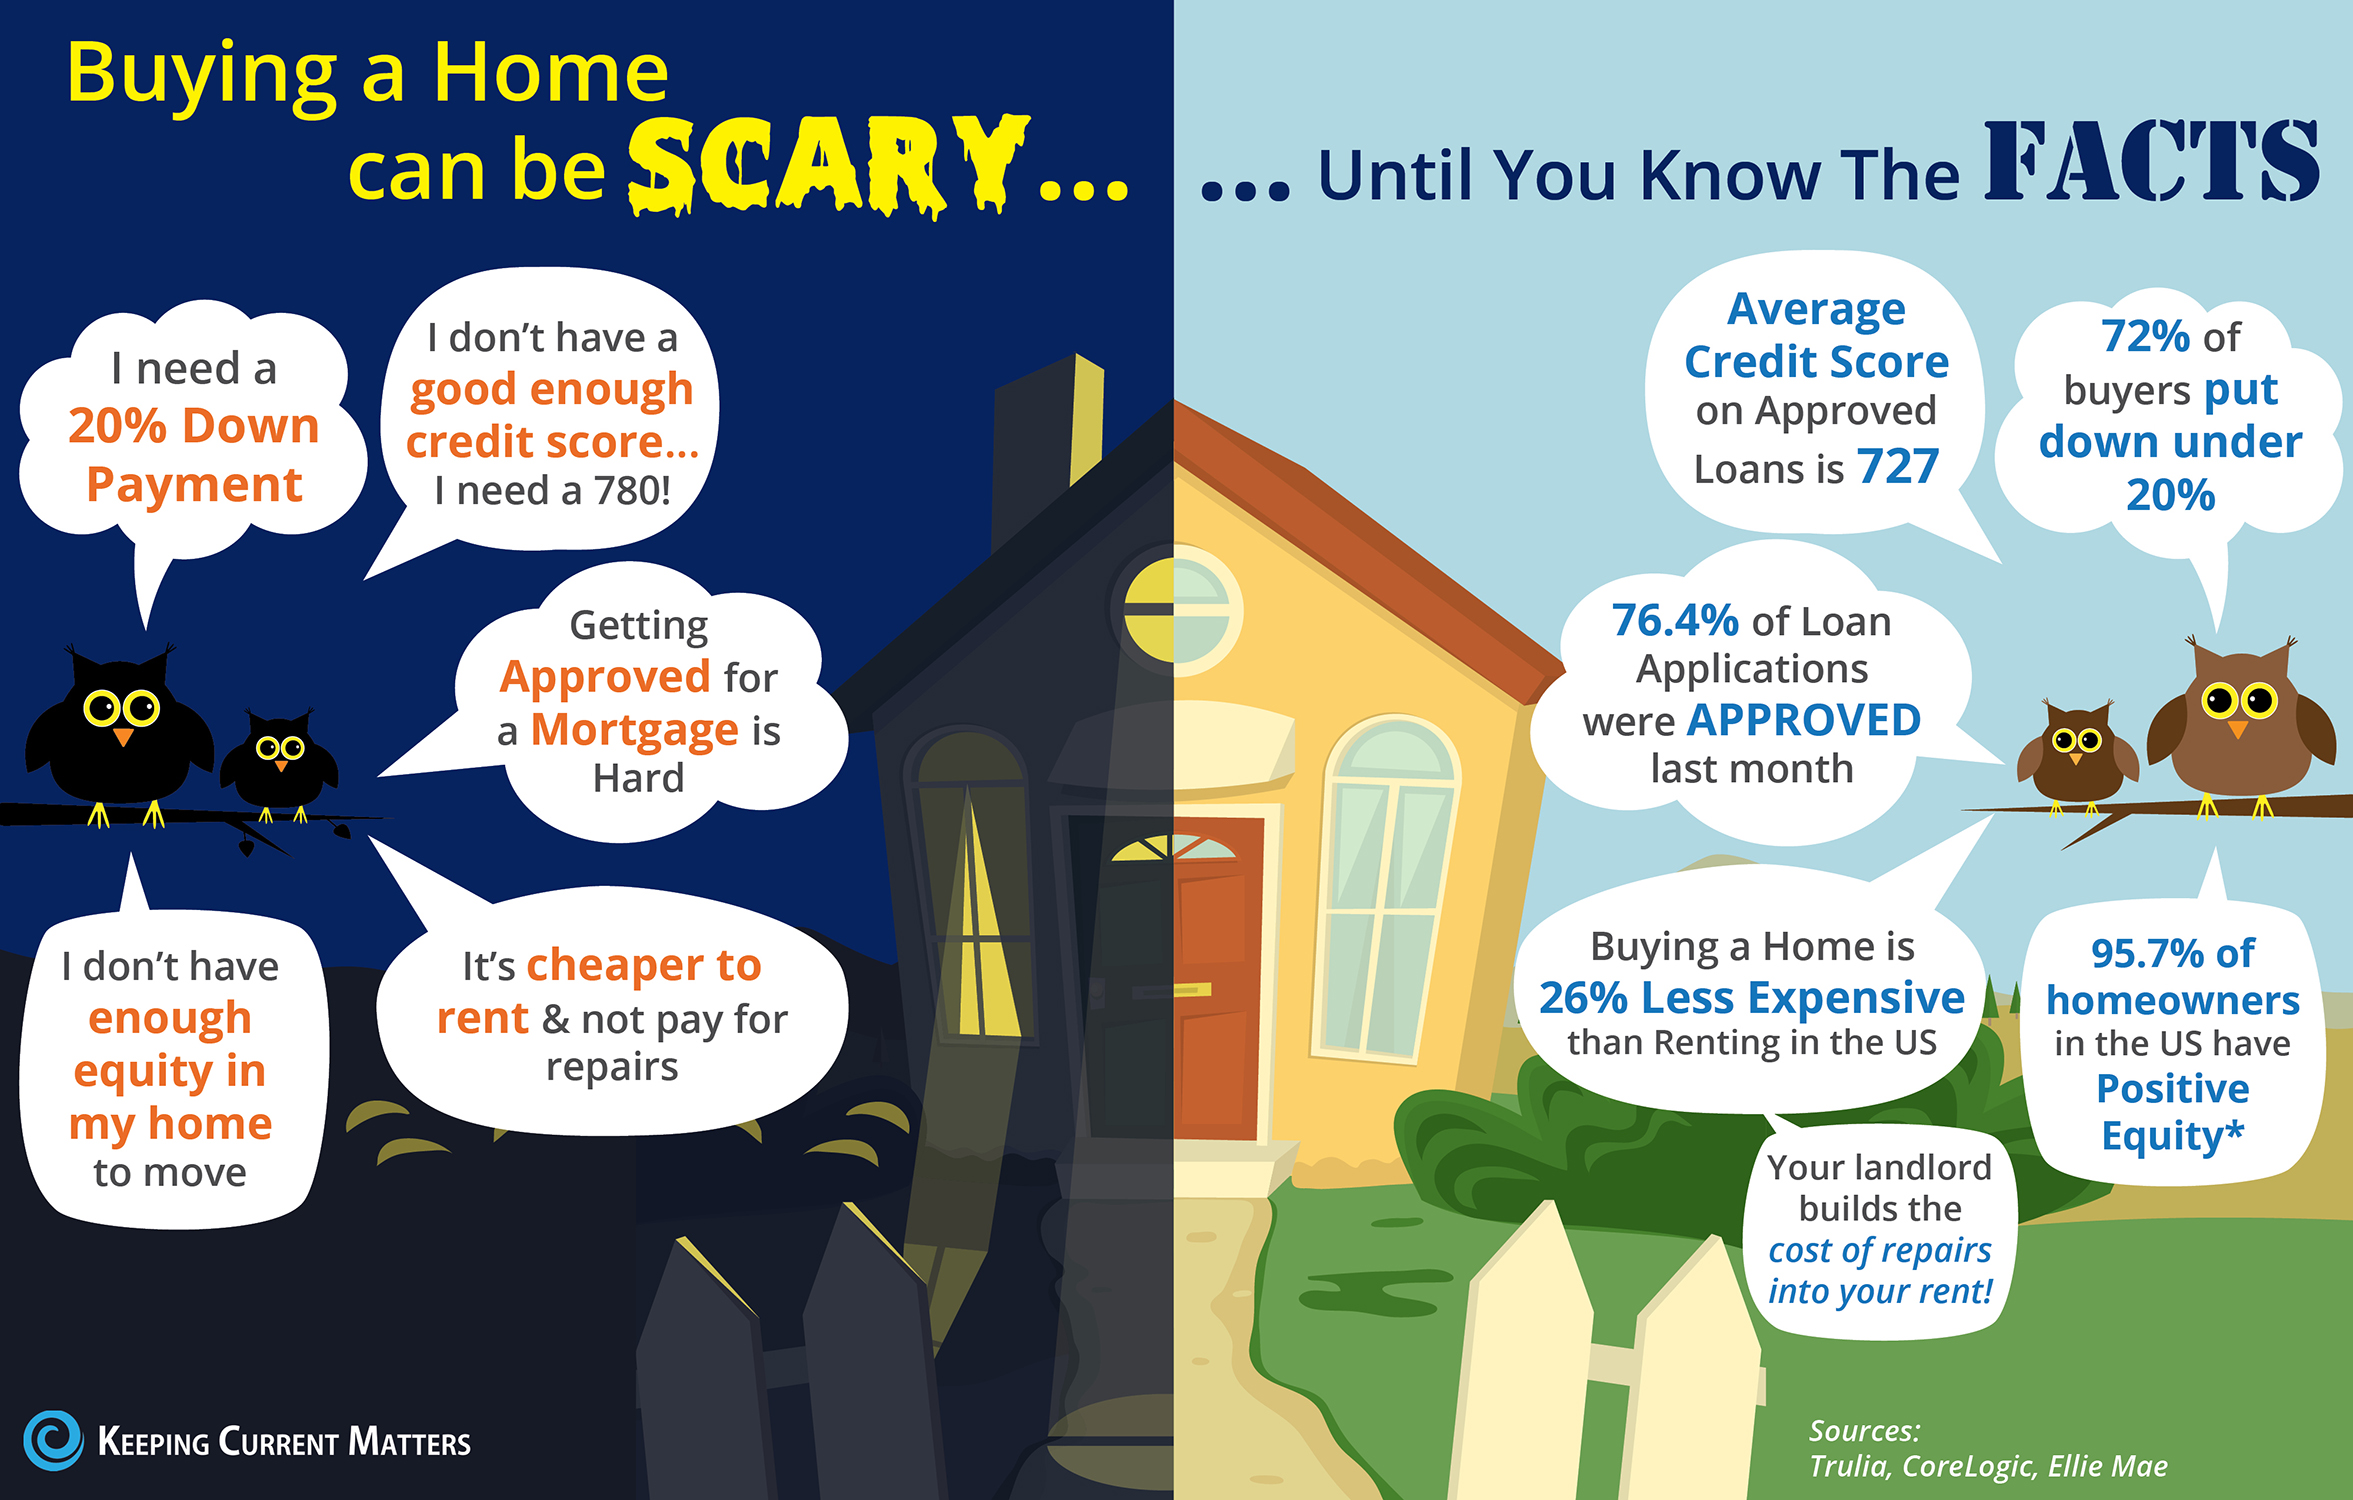 Buying a Home Can Be Scary... Until You Know the Facts [INFOGRAPHIC] | Keeping Current Matters